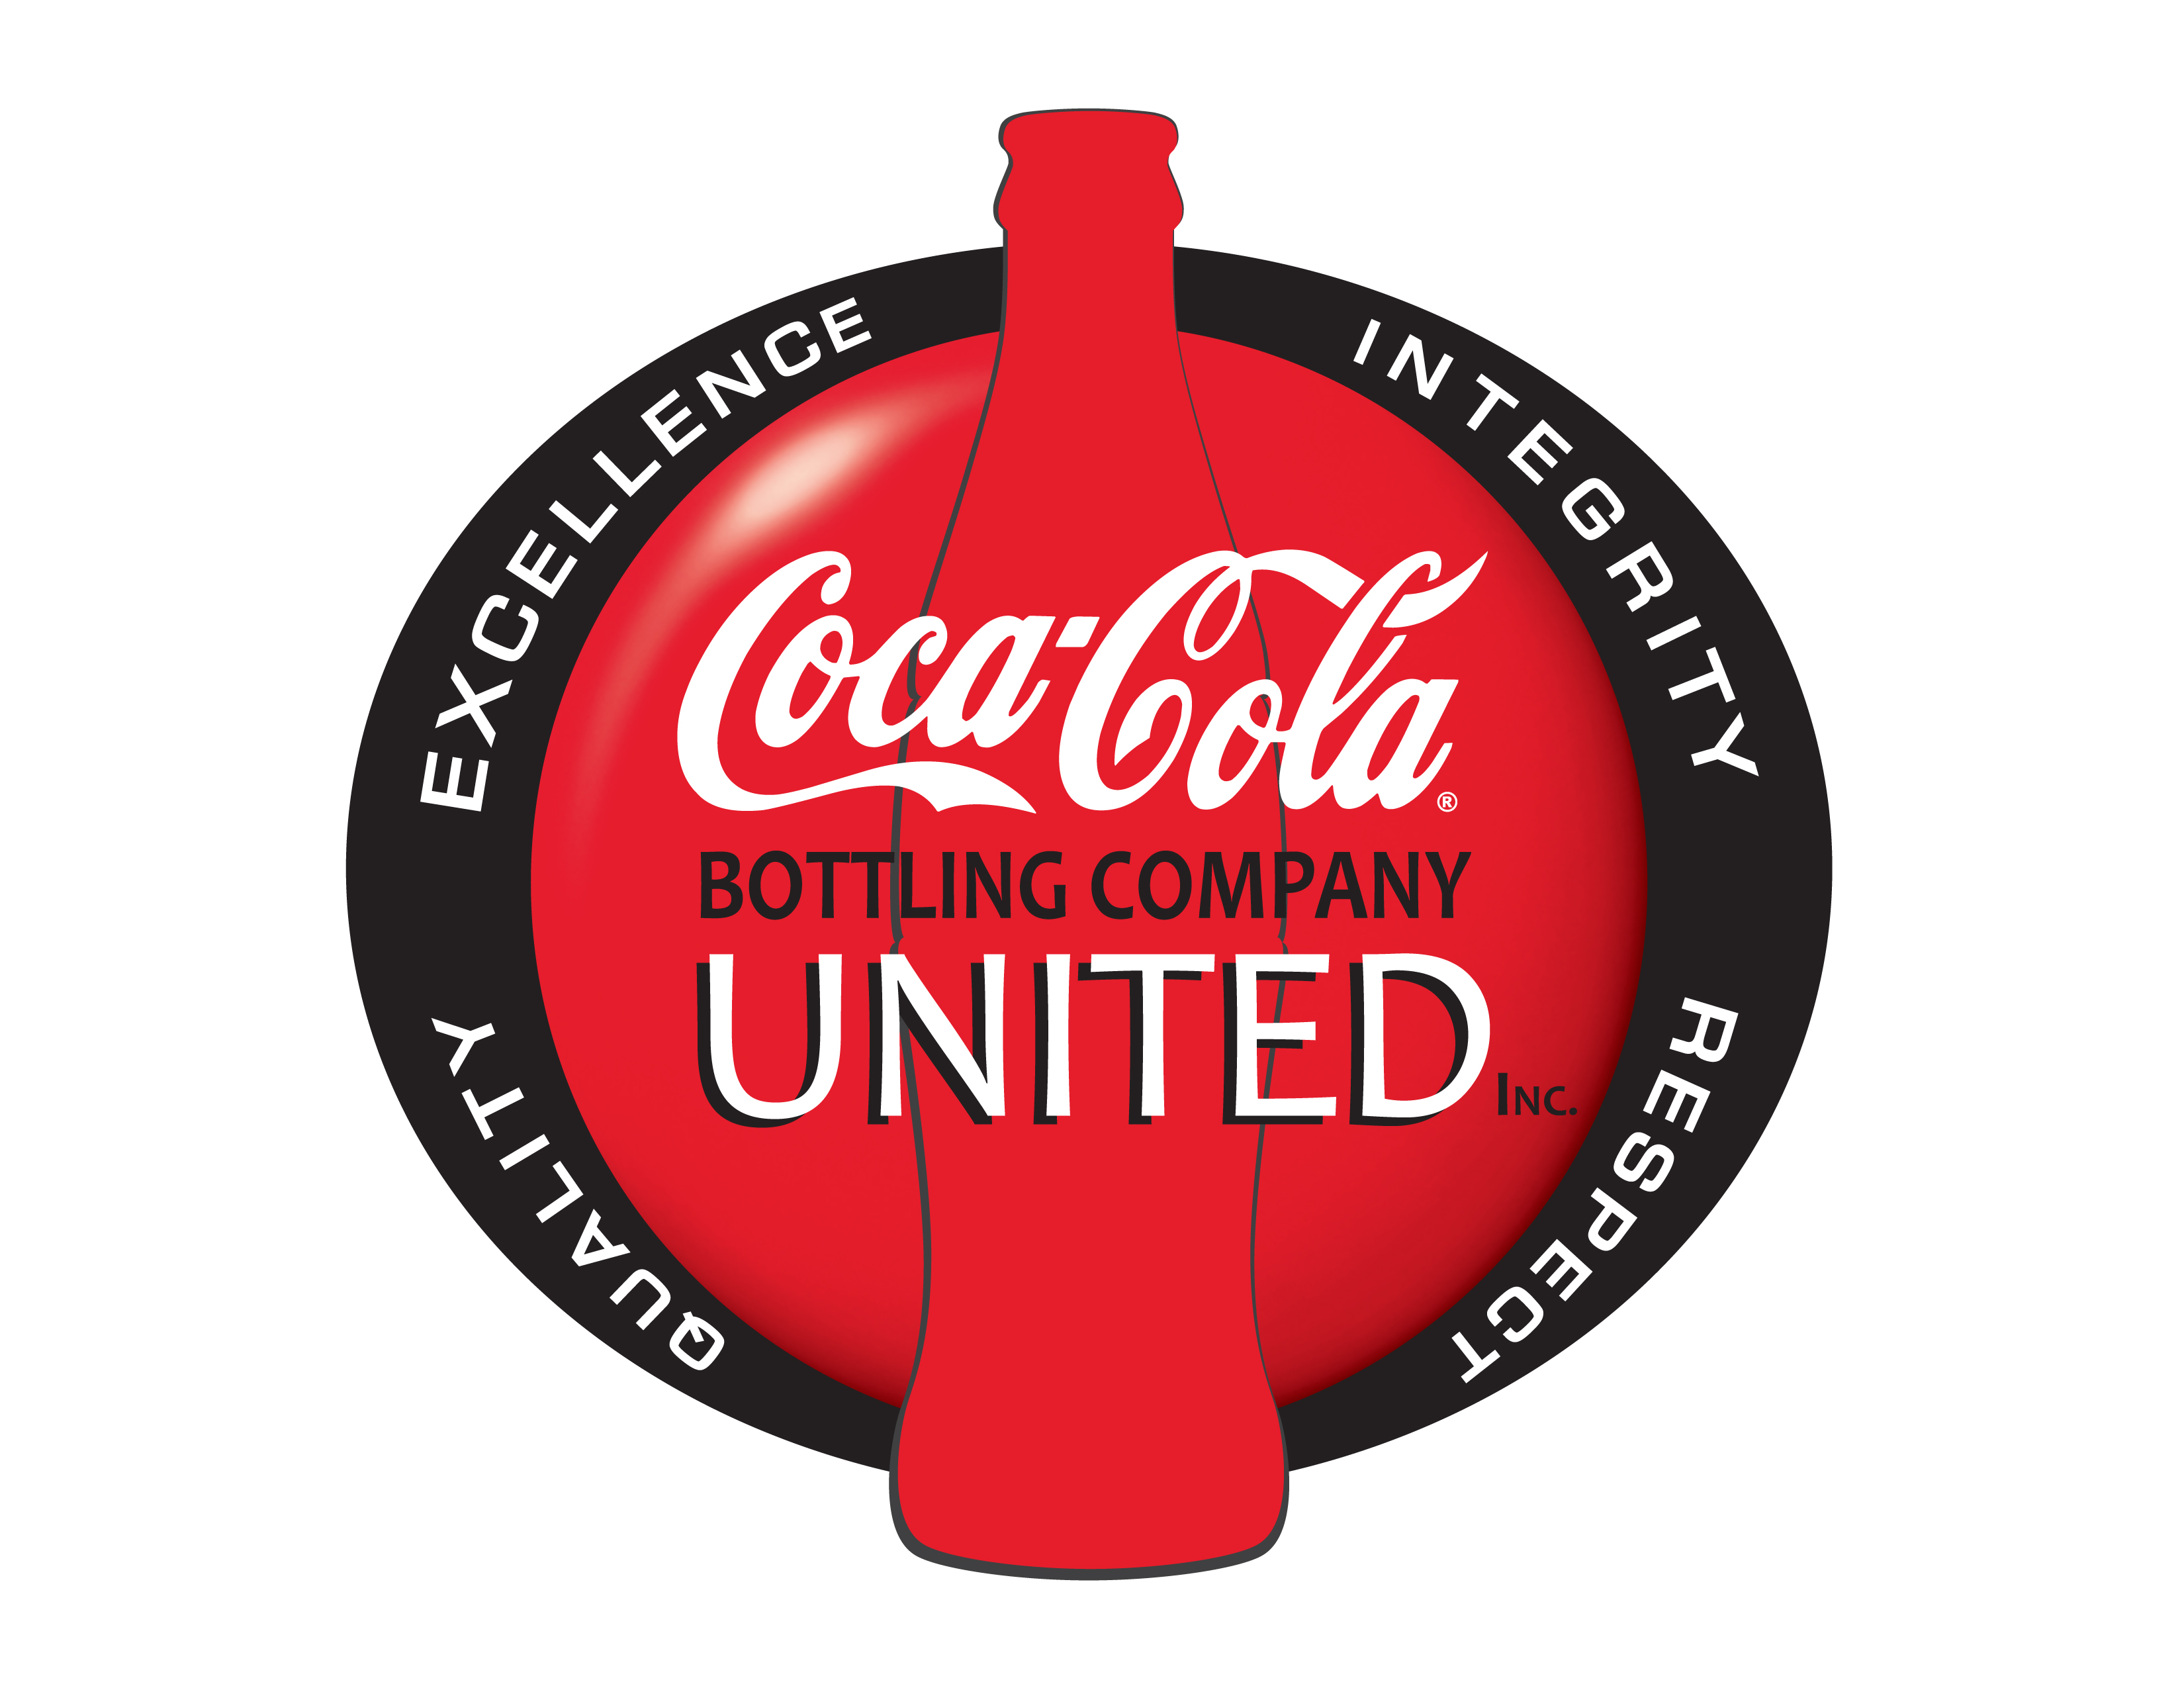 Chattanooga Coca Cola Bottling Company United